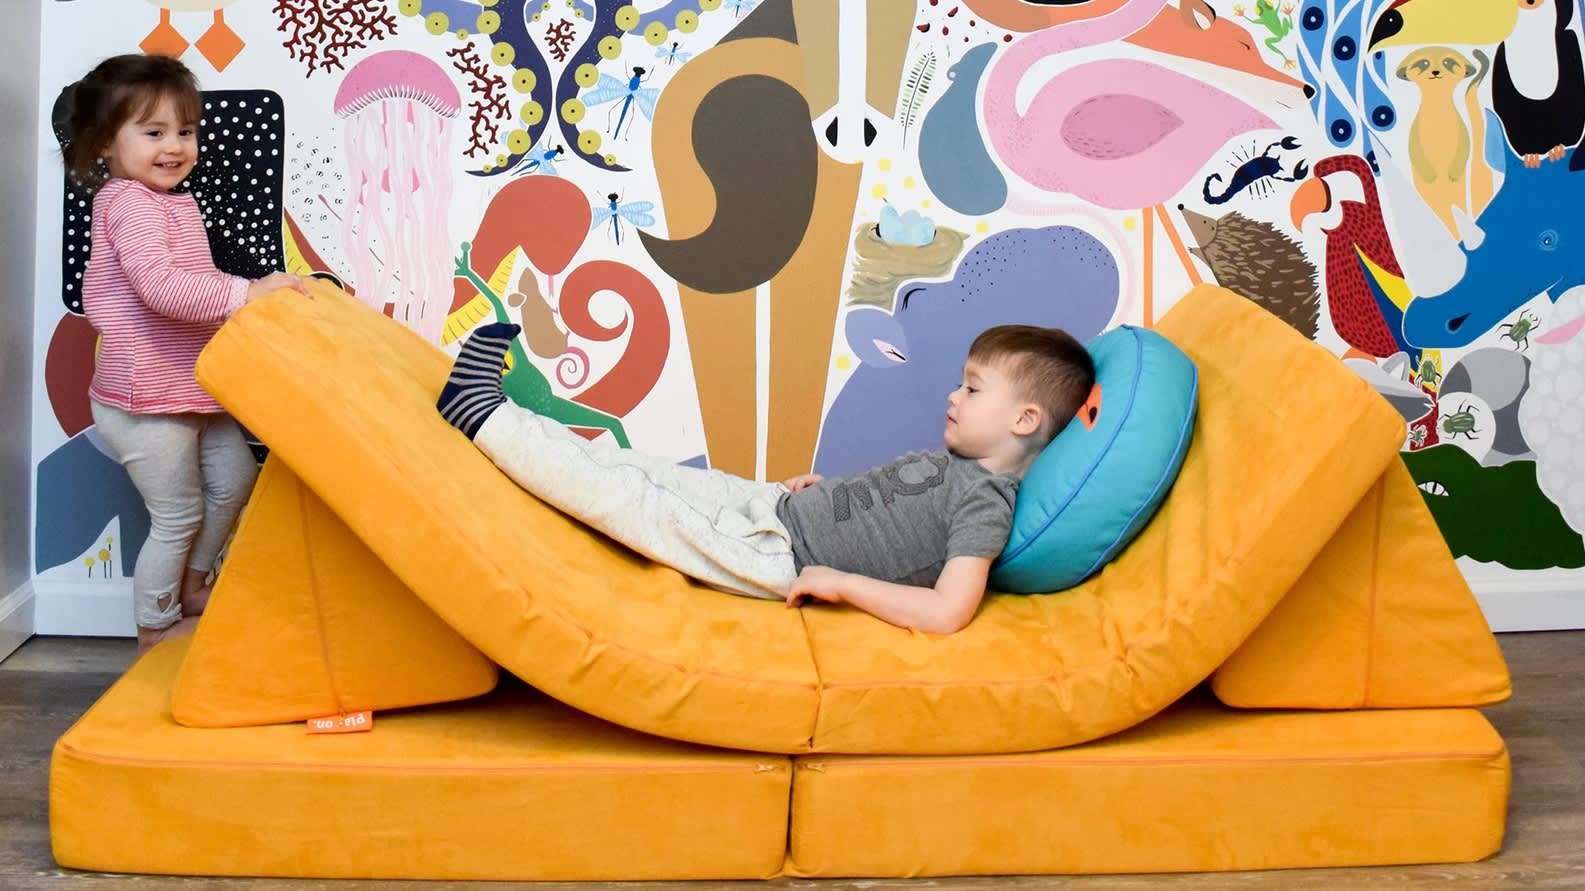 The infinitely configurable play couch made up of four foam pieces: base, cushion, and two triangle pillows.